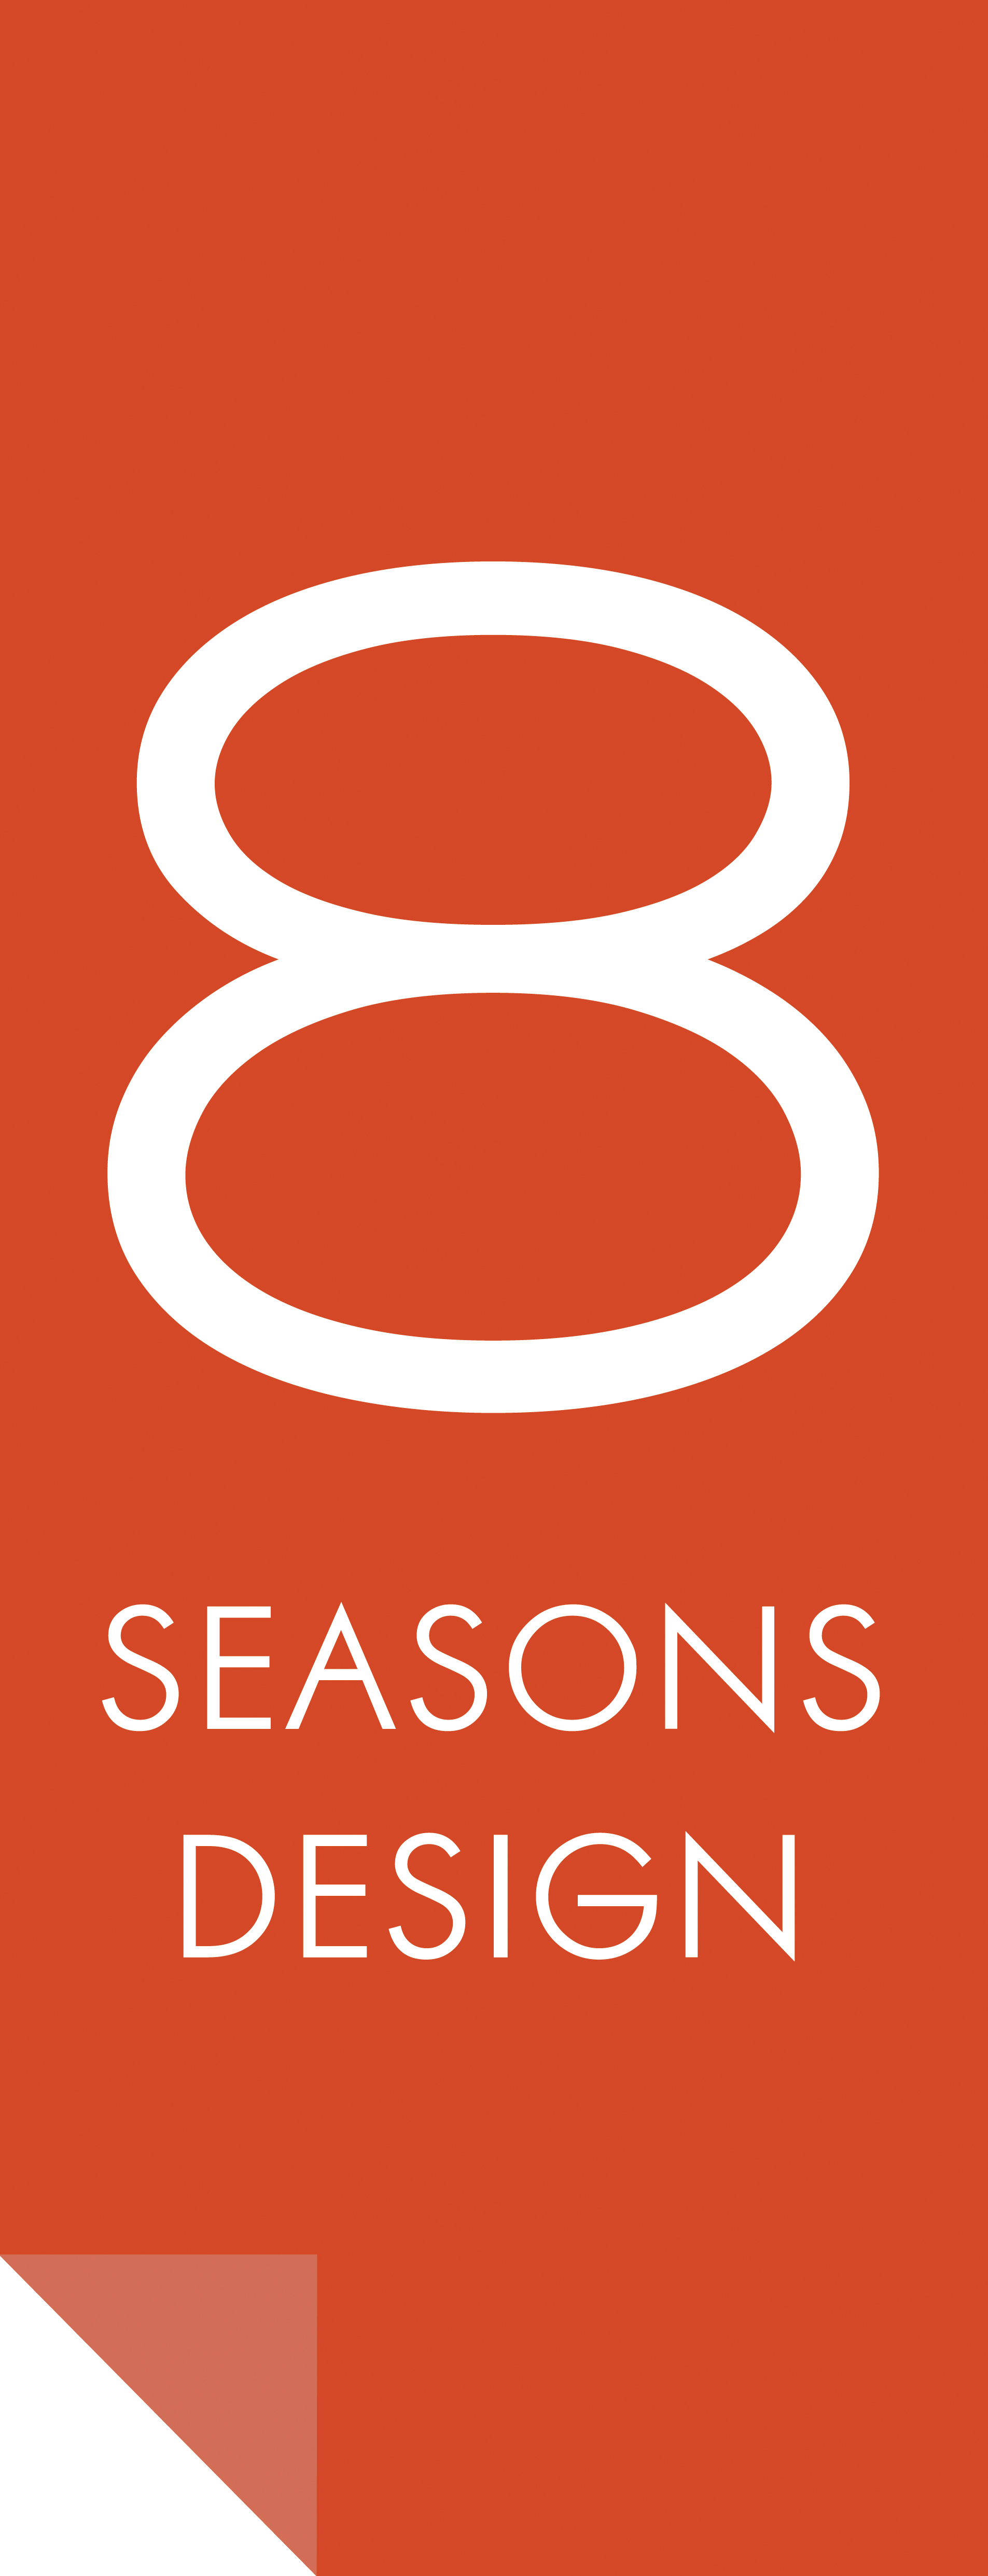 8 SEASONS DESIGN